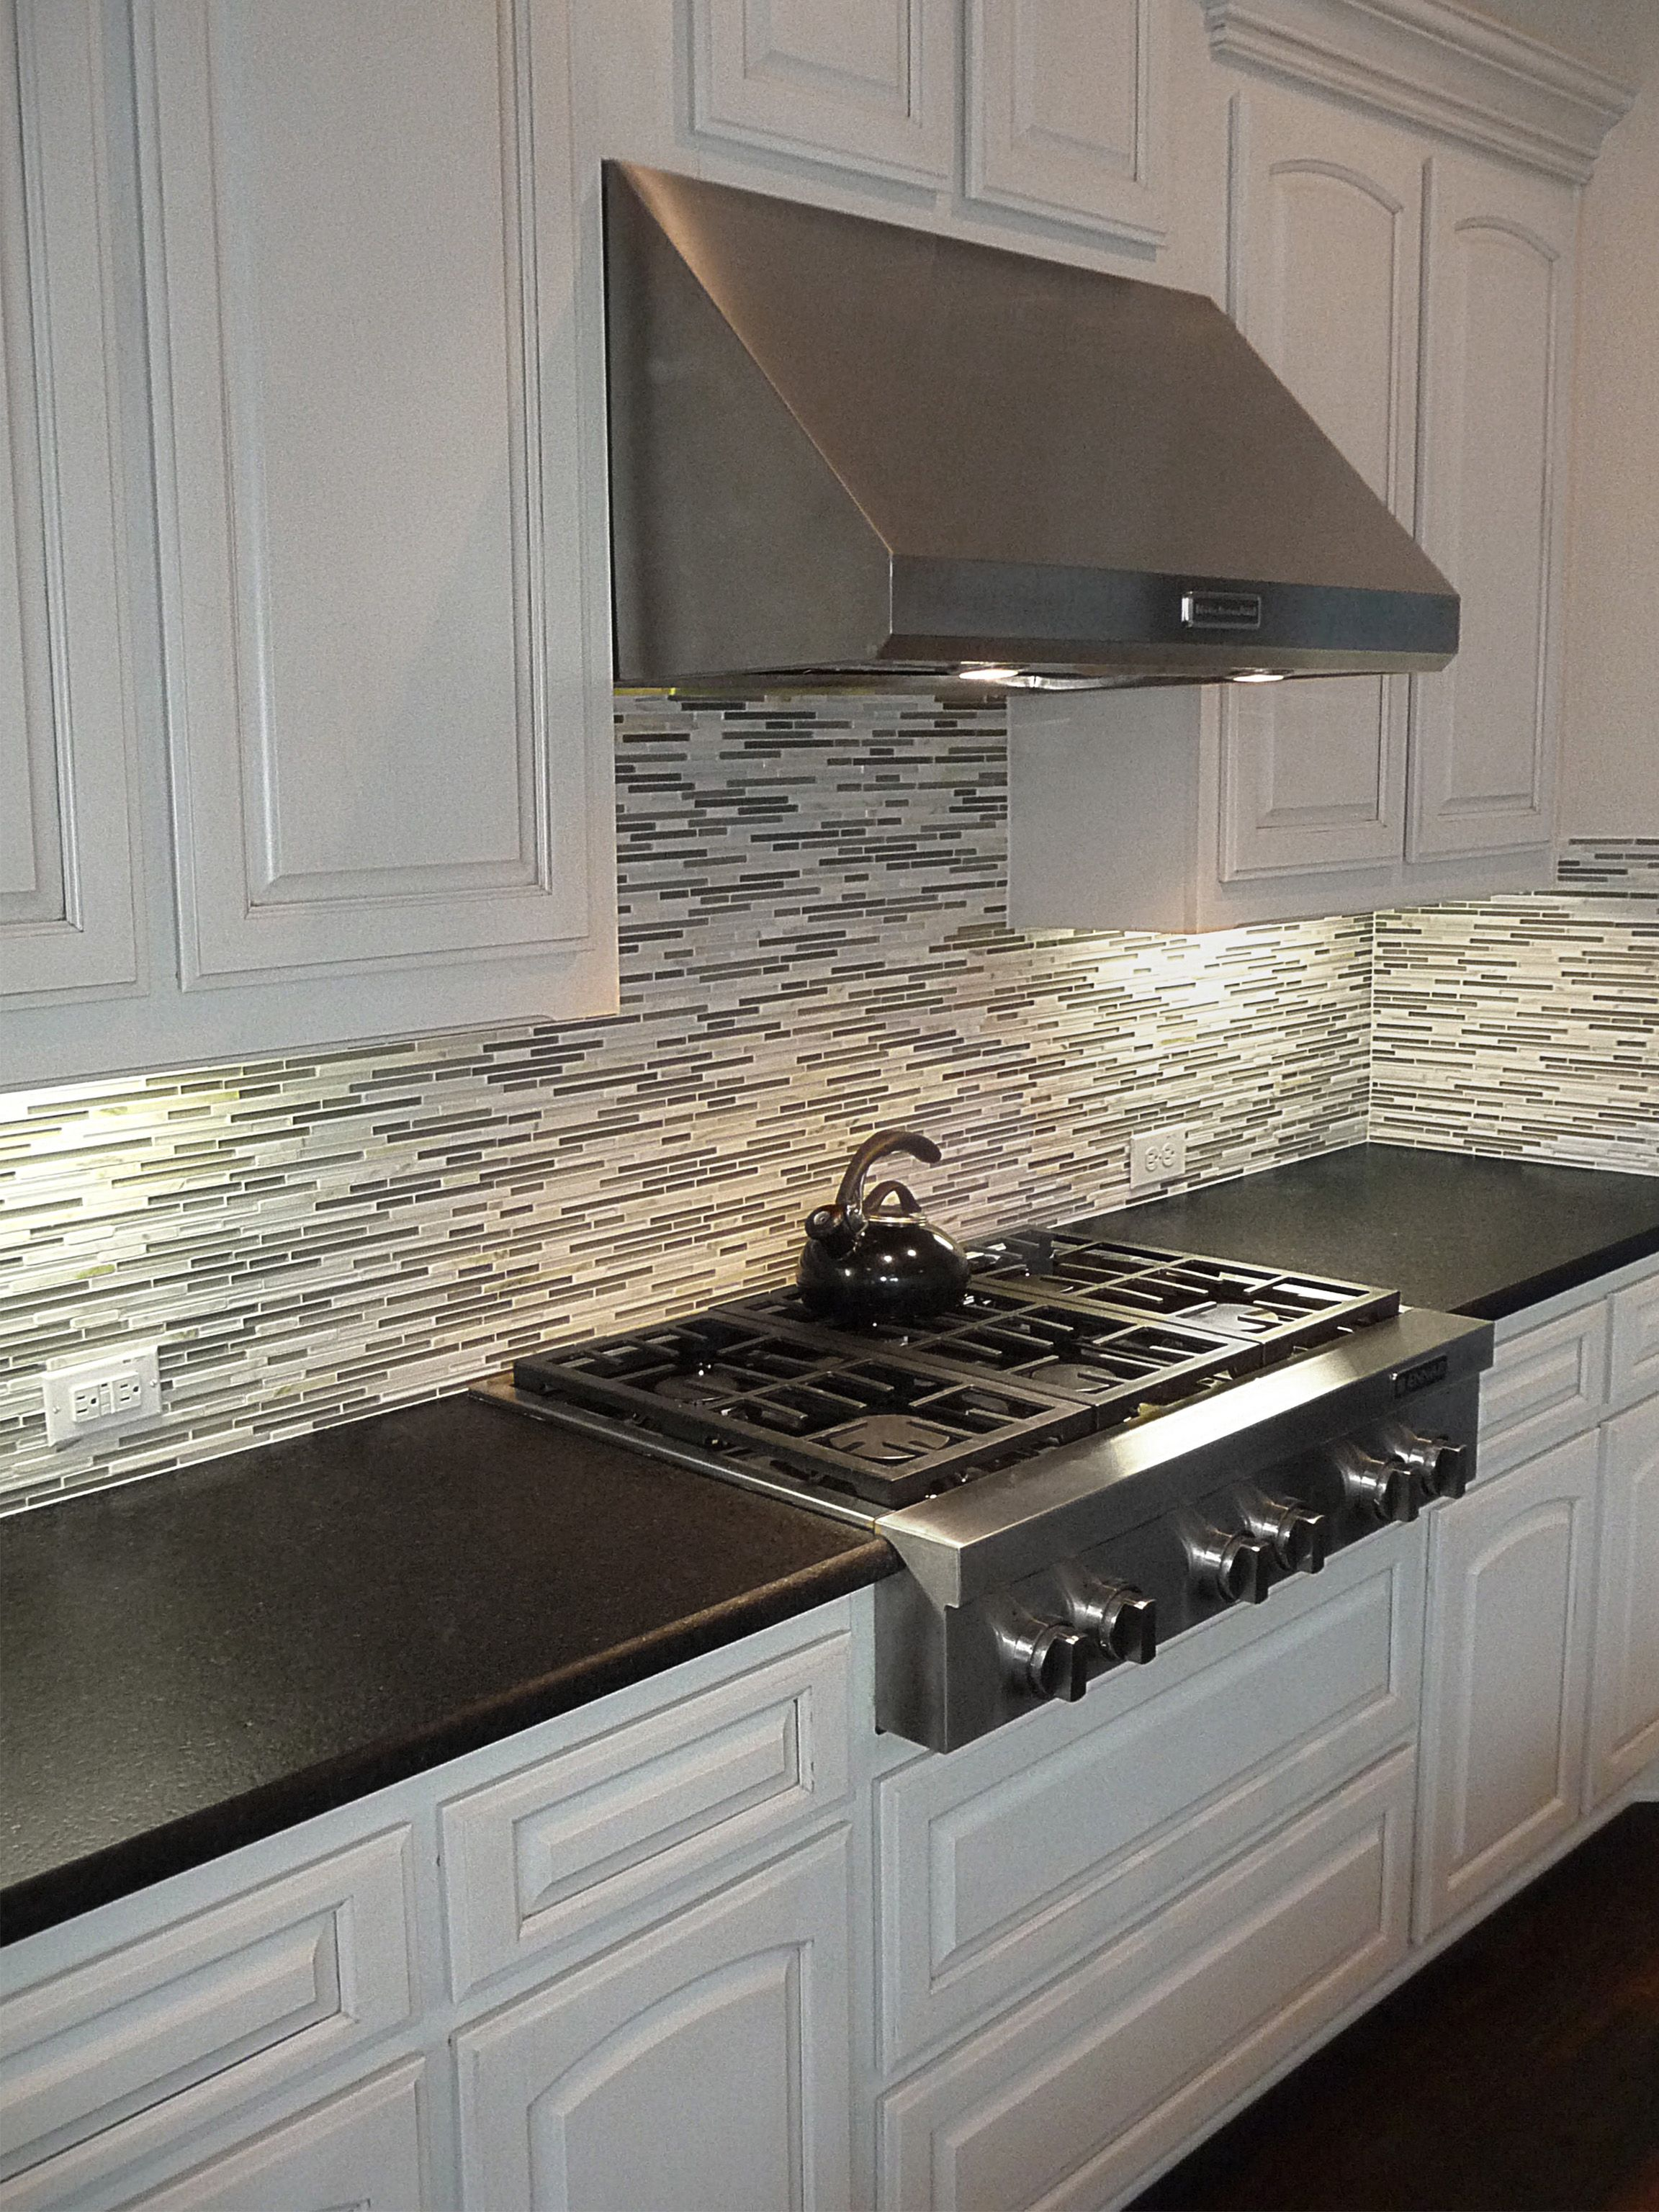 Best Backsplash For White Cabinets And Black Granite Black Pearl Leather Granite Countertops With A Mosaic